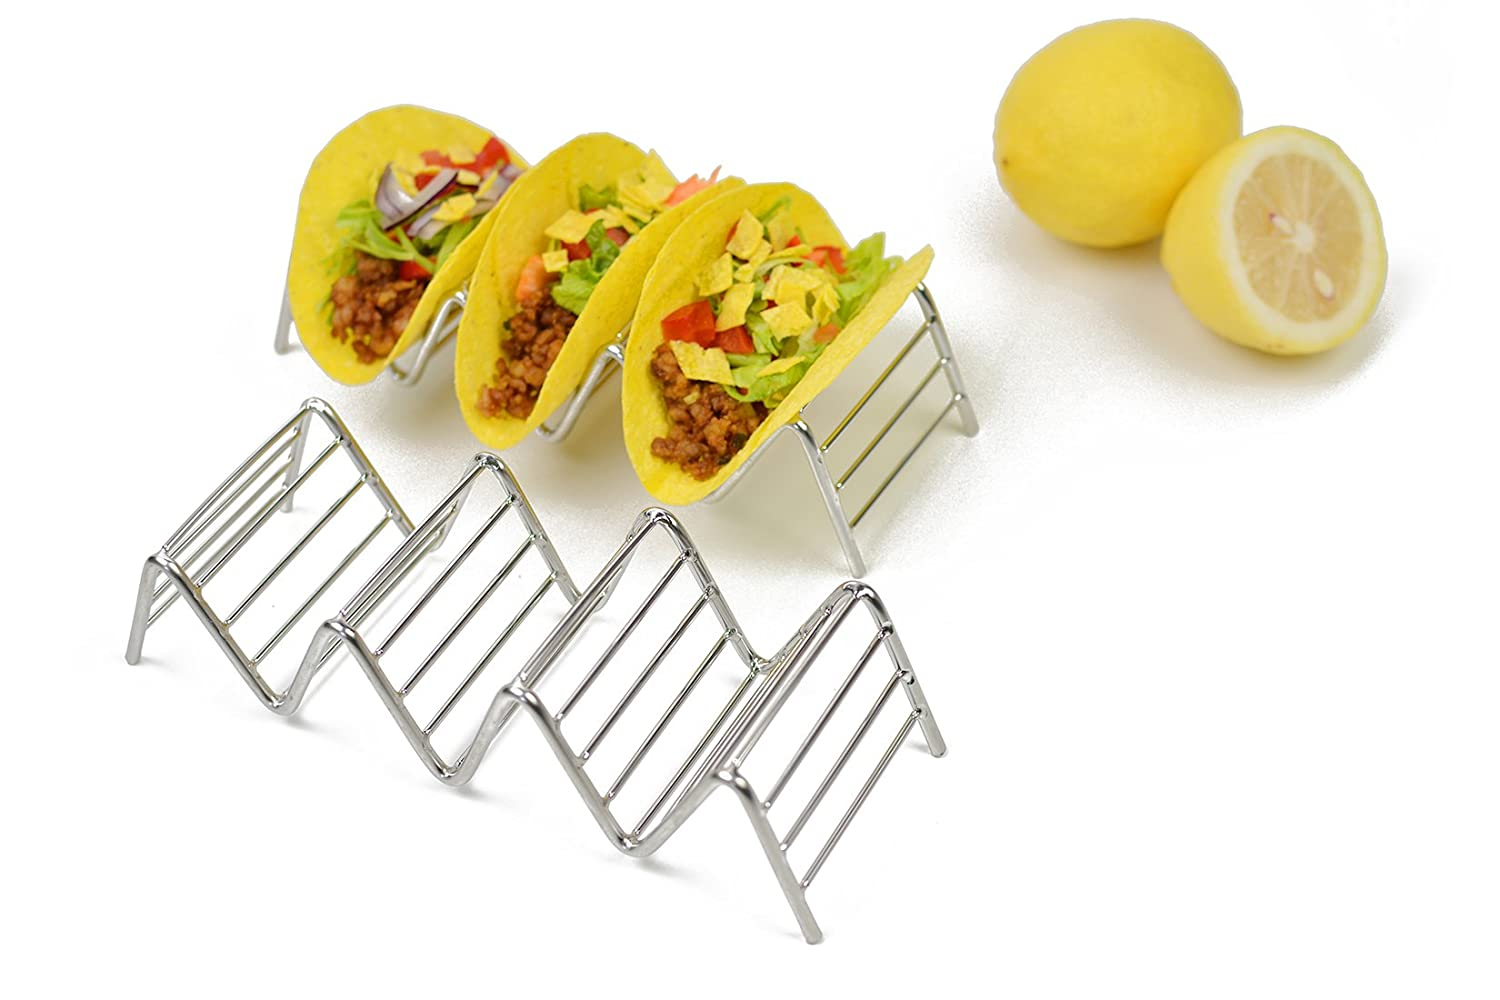 Taco Holder, HapWay 2 Pack Stainless Steel Taco Stand Mexican Food Rack Shells for Hard or Soft Shell Tacos (4 Stack Holder)